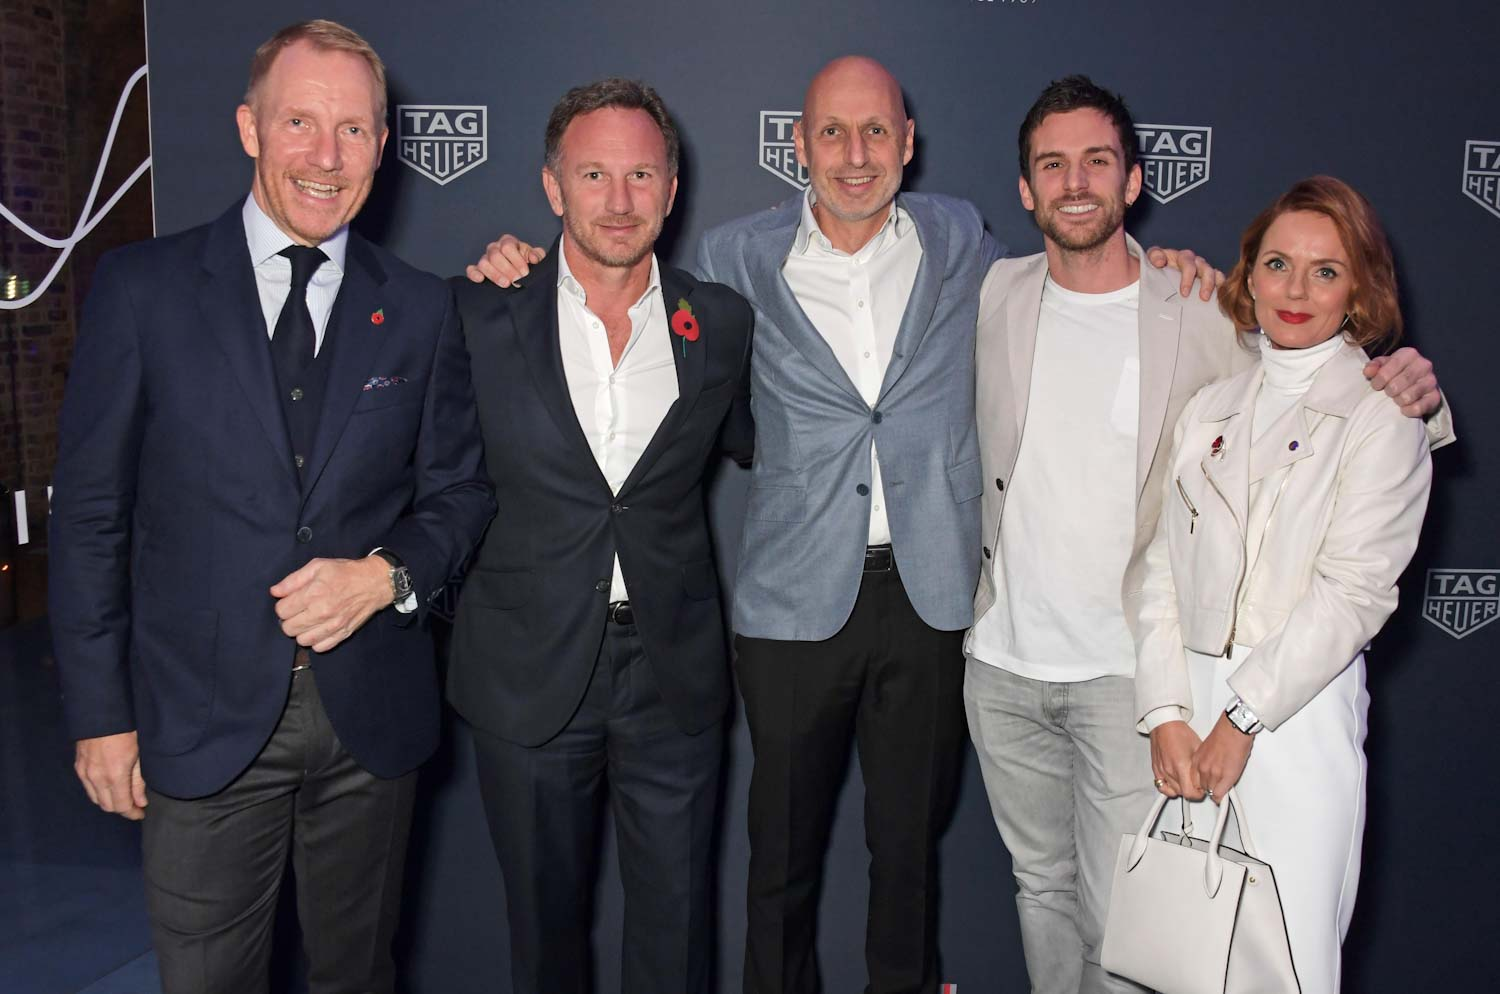 Bianchi with Rob Diver, Christian Horner, Guy Berryman and Geri Horner at the Chucs Serpentine, London.